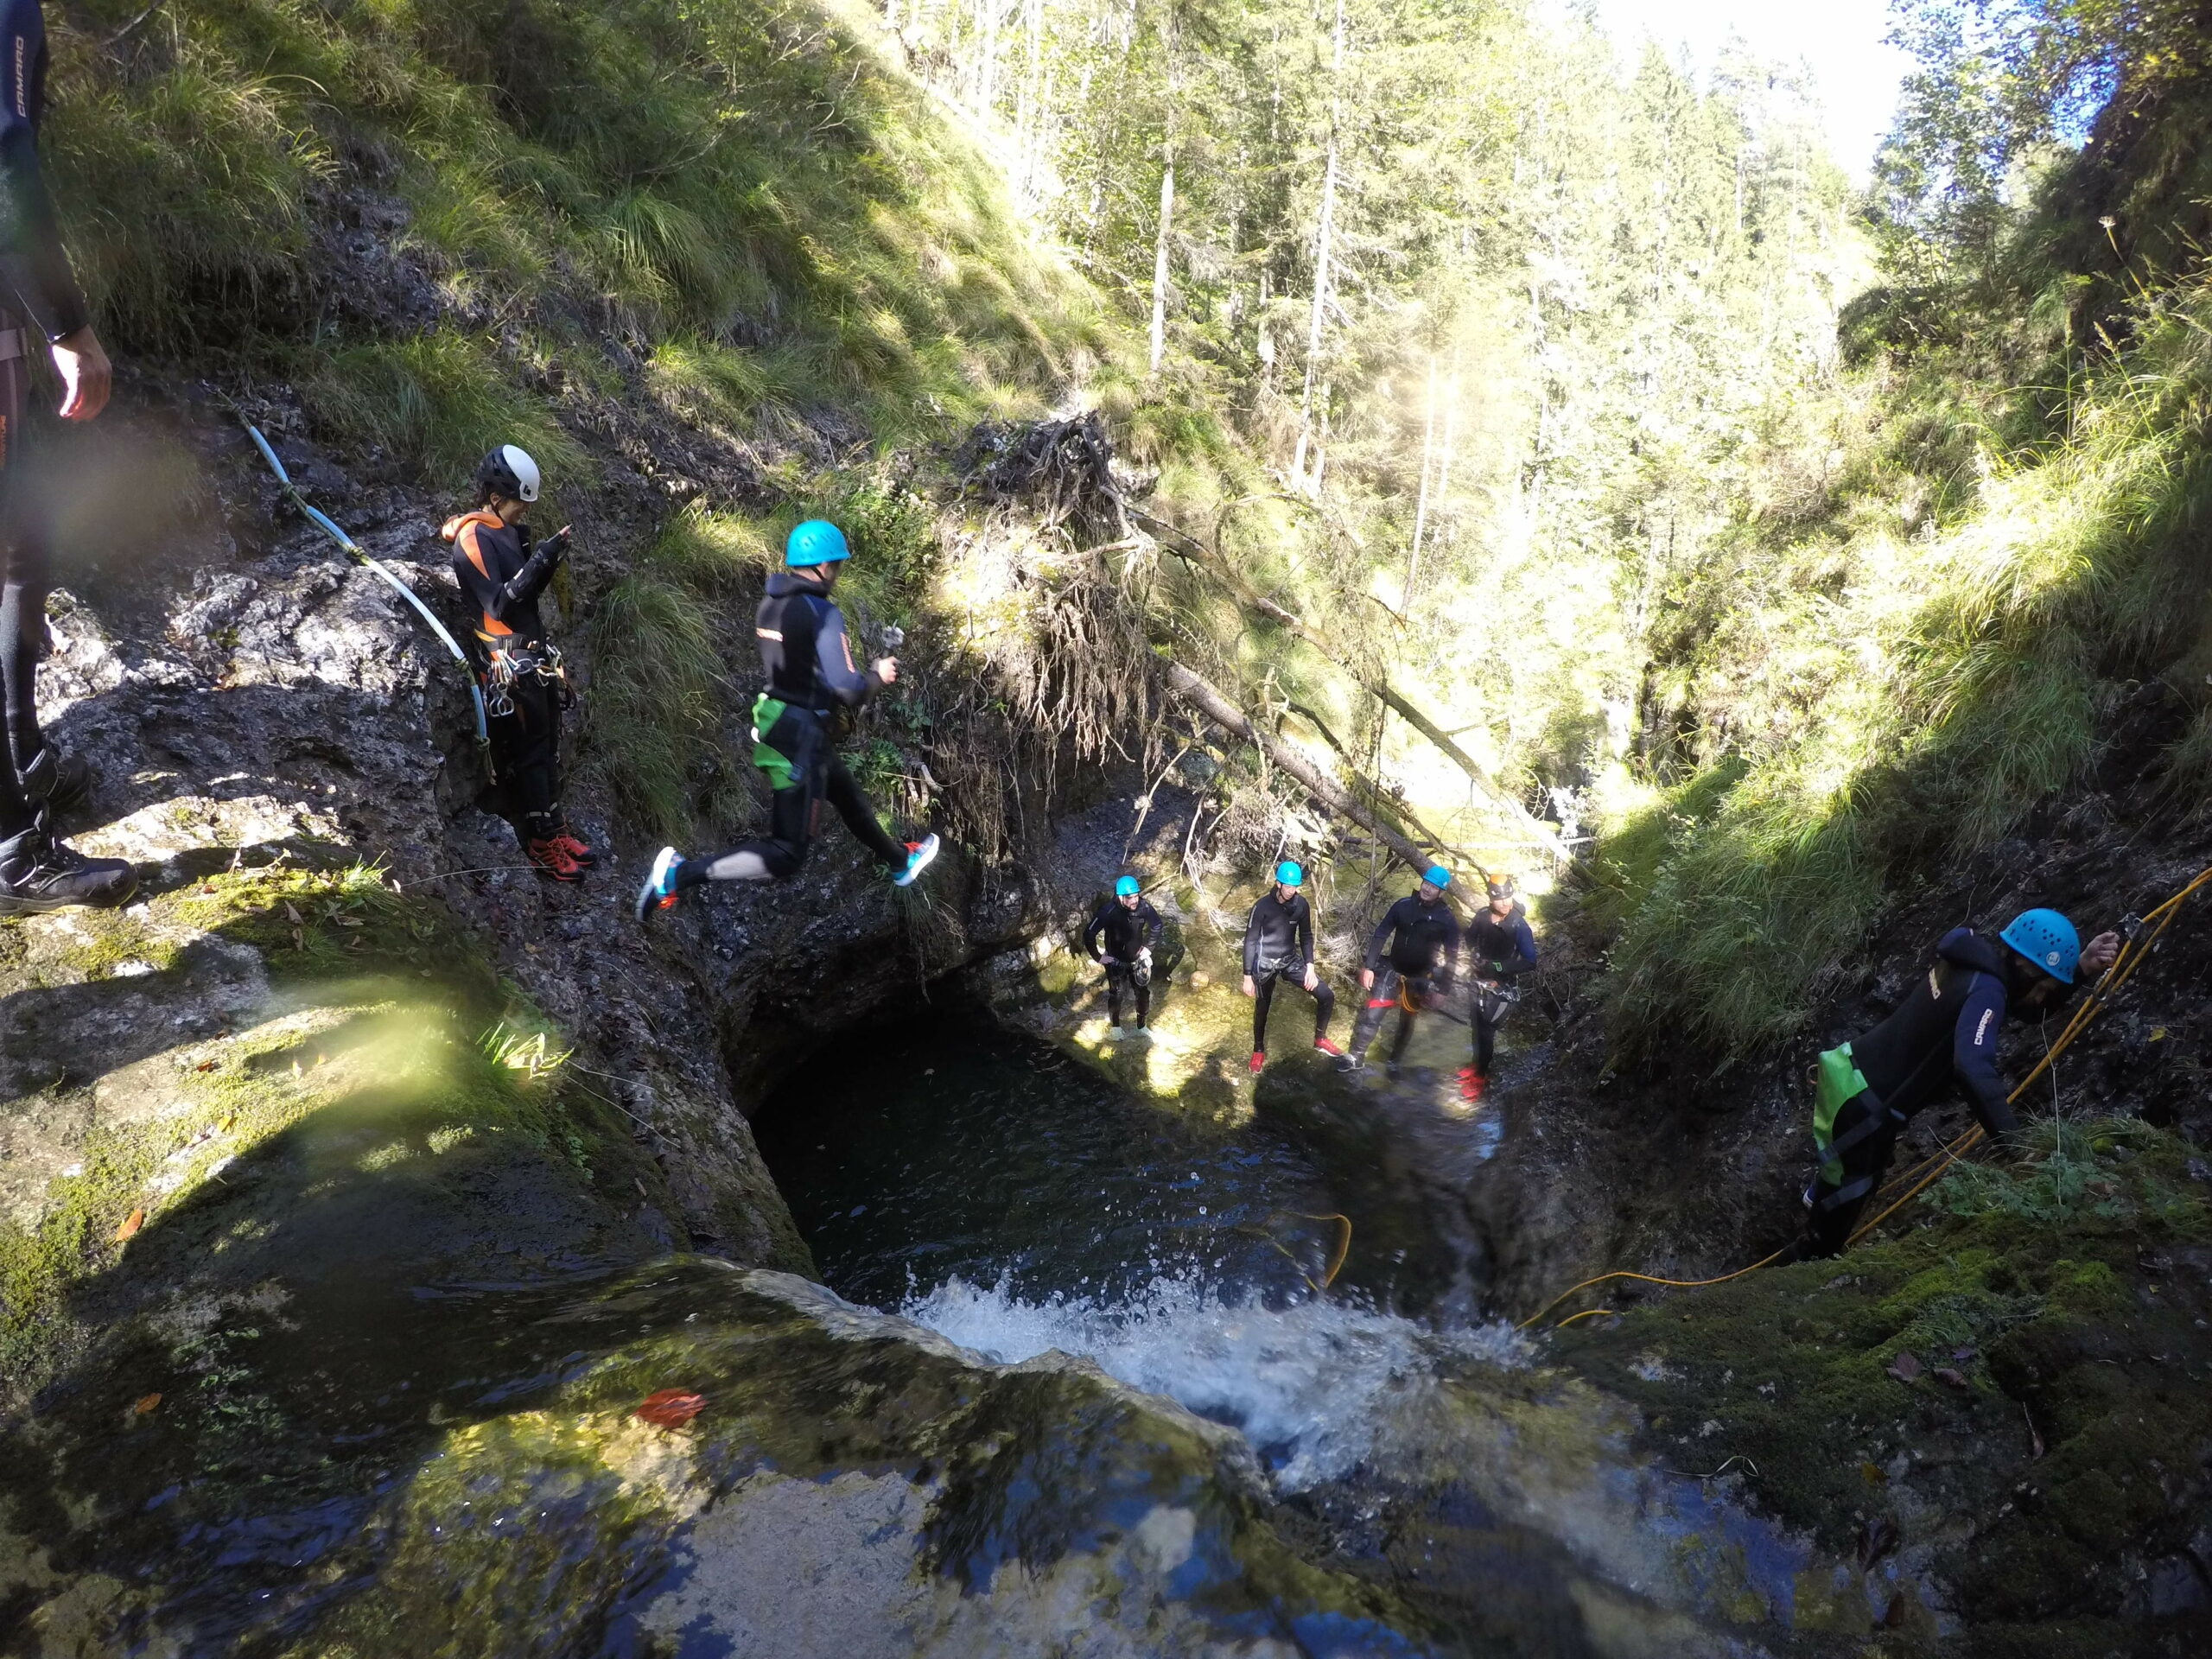 An accilium employee is jumping from a cliff inside a canyon into a big natural pool. Several other accilium employees are standing aside and applaude him.